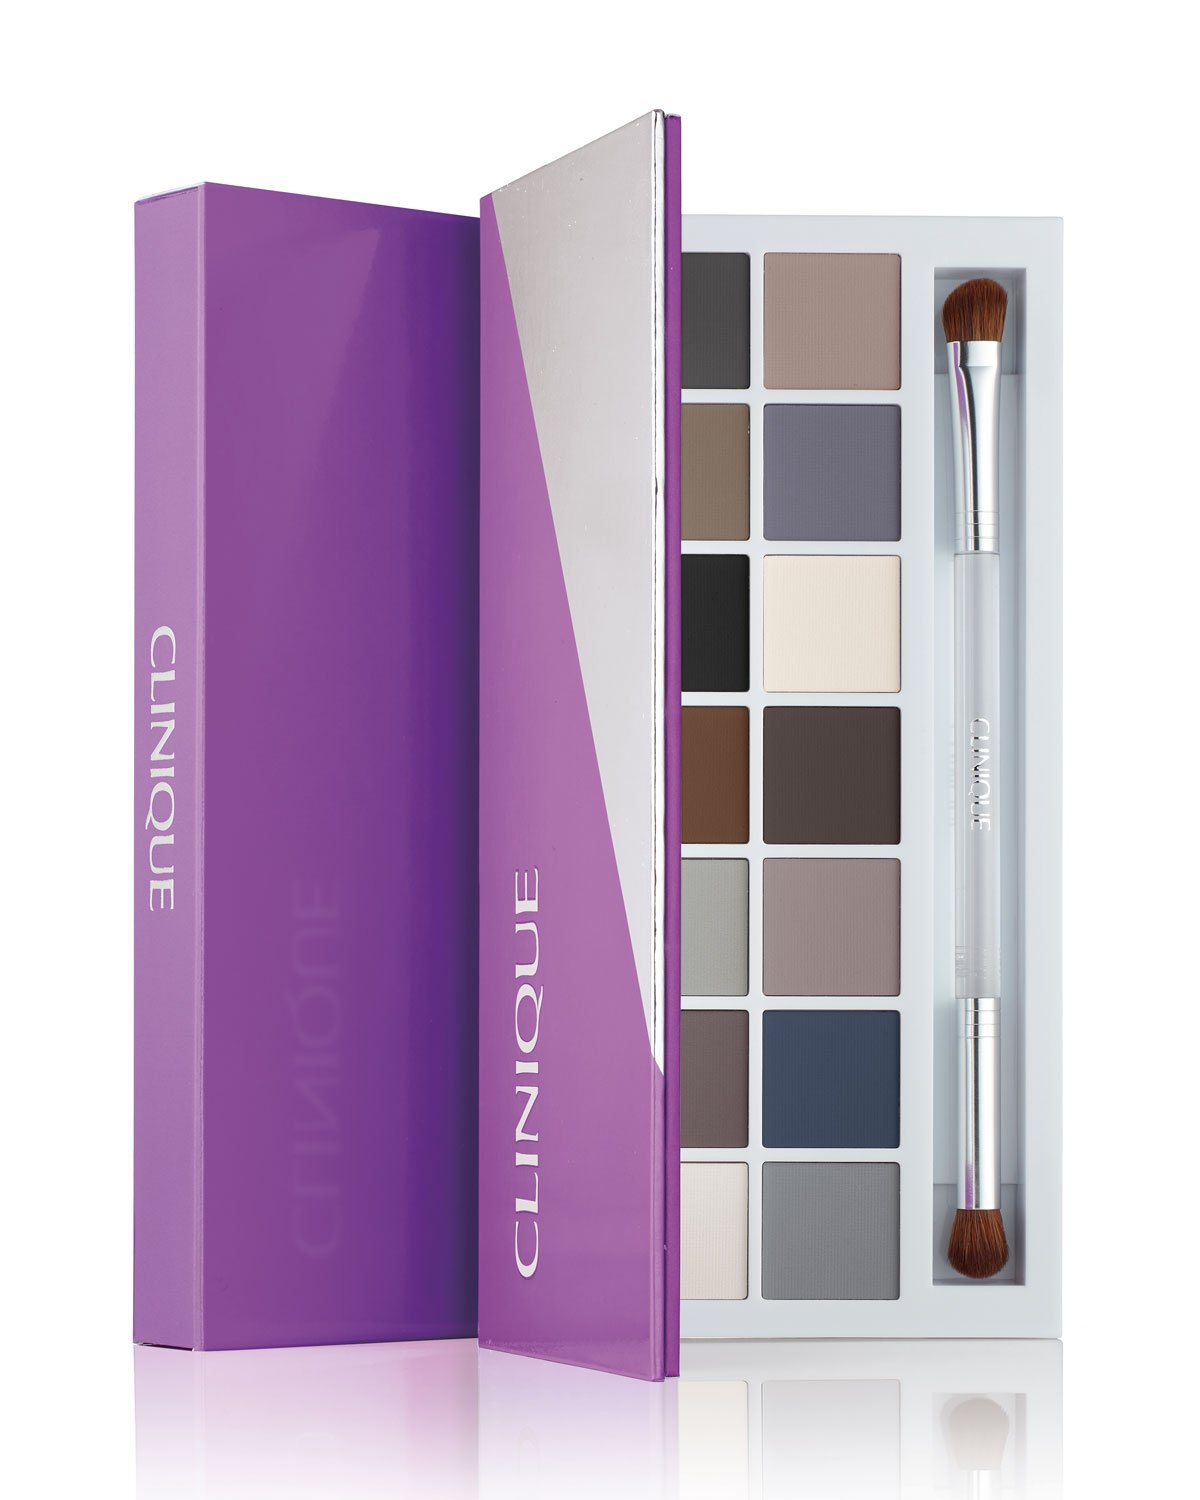 Clinique 2017 Party Eyes - All About Shadow Palette - Set of 14 Shades and Dual-Ended All-Over Brush/Contour Brush